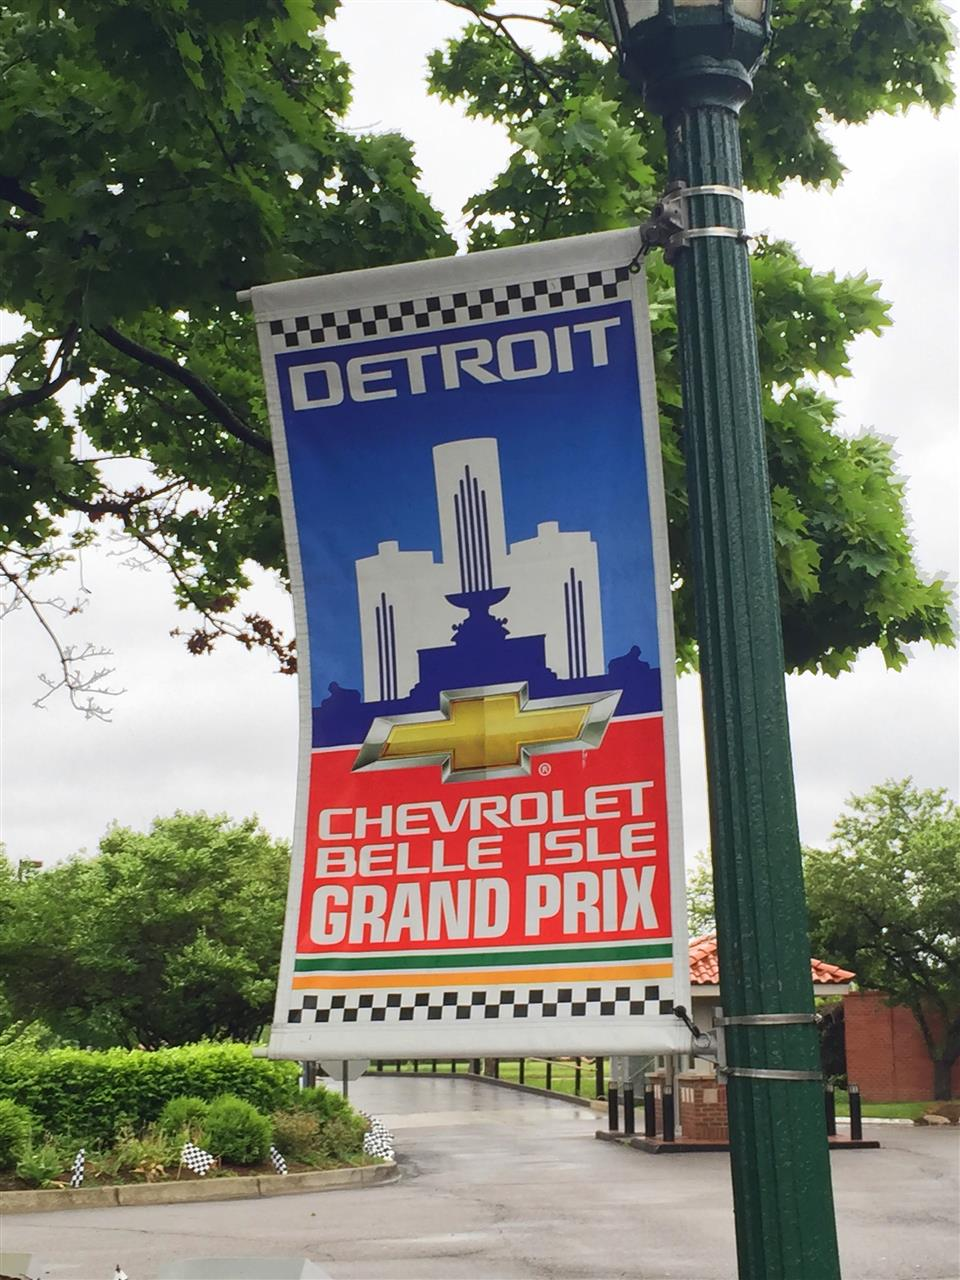 The Detroit Belle Isle Grand Prix is a weekend of professional auto racing held on Belle Isle ~ Detroit, Michigan #LeadingRElocal #Detroit, #Michigan